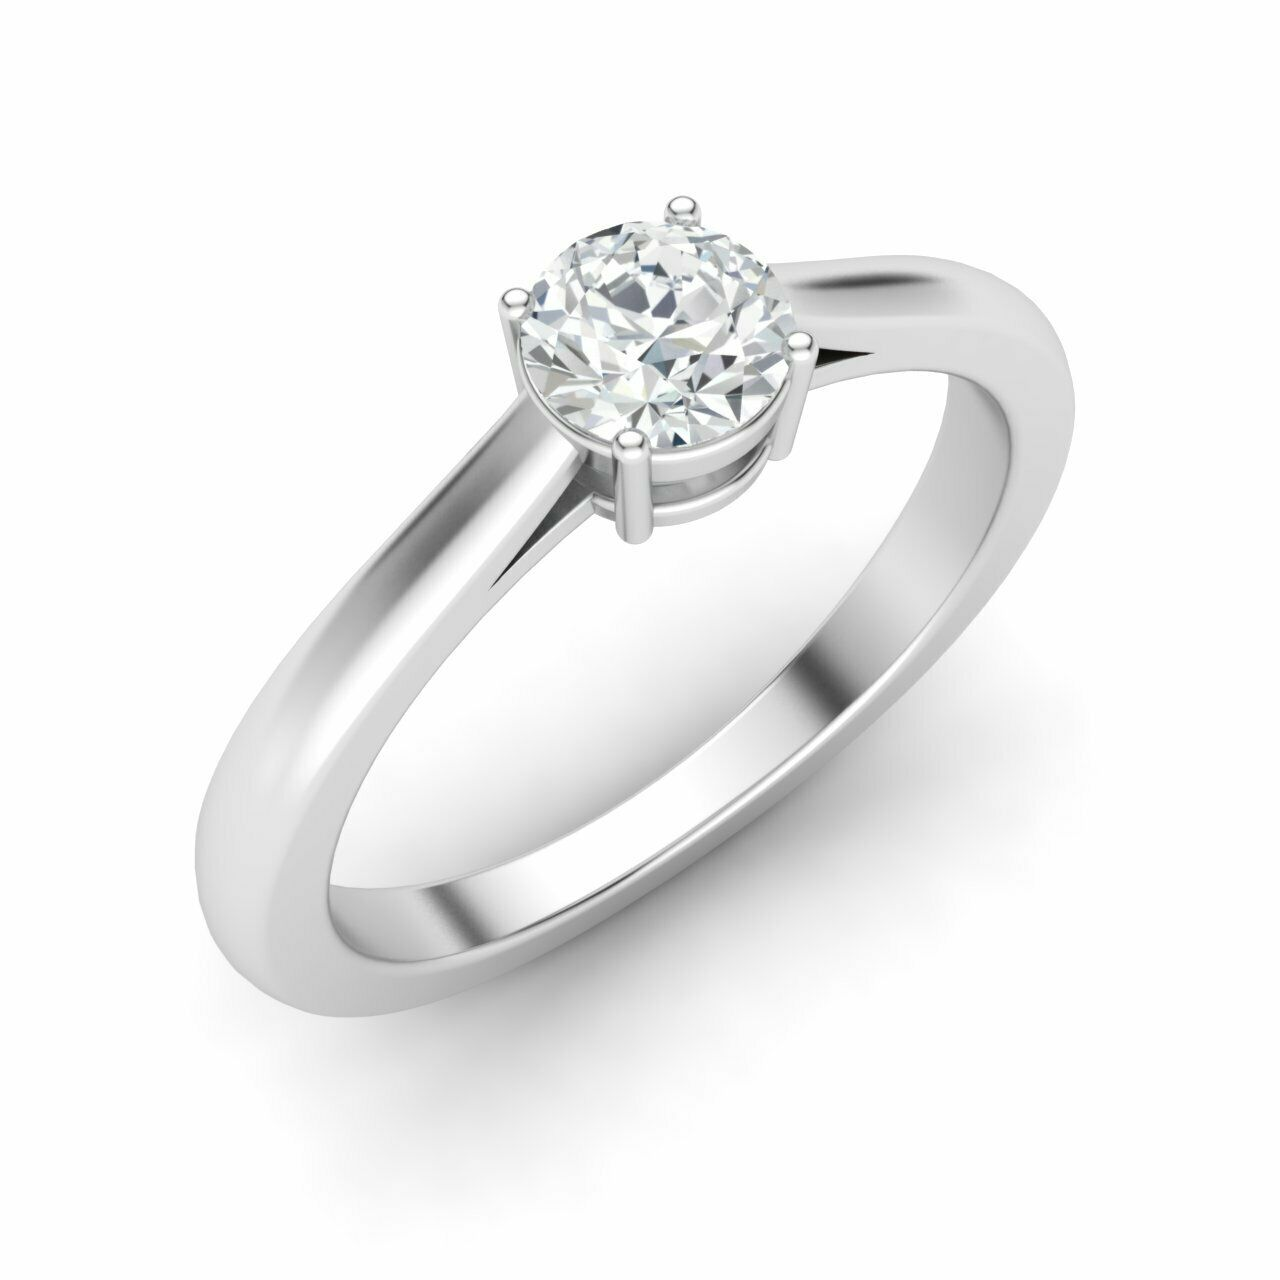 GIA Certified 14K White Gold 0.40 Ct G VS1 Natural Diamond Solitaire Ring Size 7